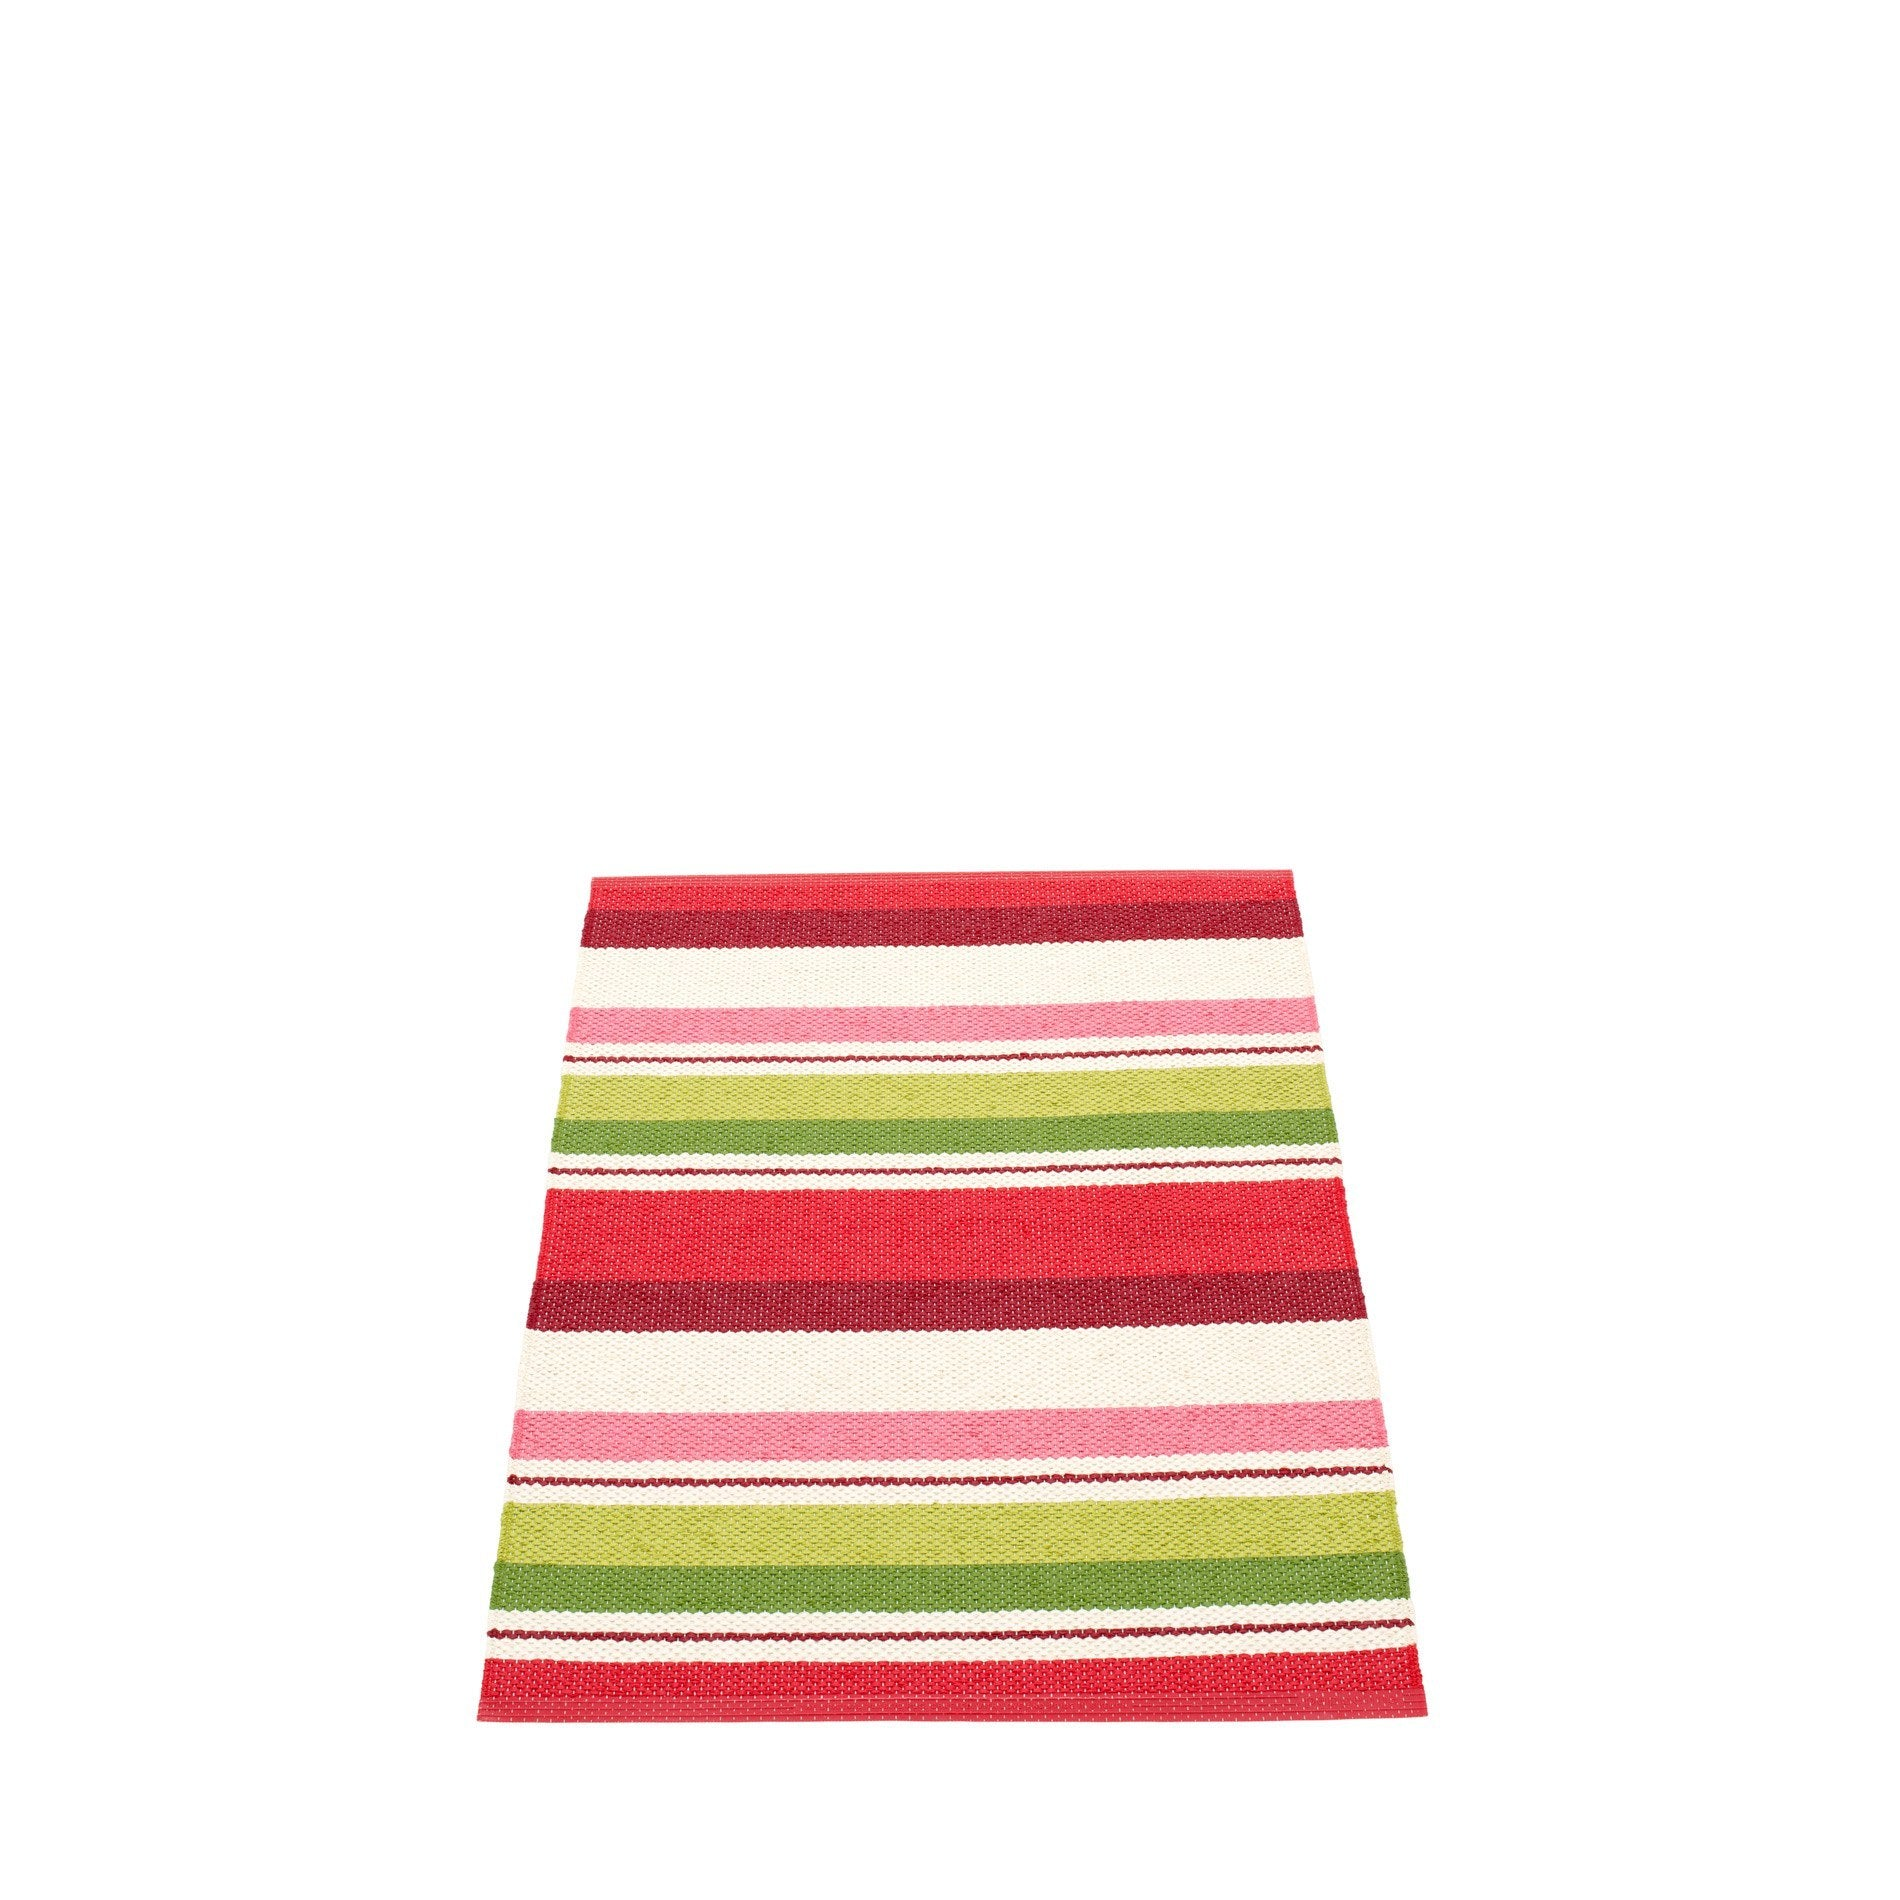 "Pappelina Indoor/Outdoor Plastic Rug Folke Red (70cm x 100cm) or (27.6"" x 39.4"")"